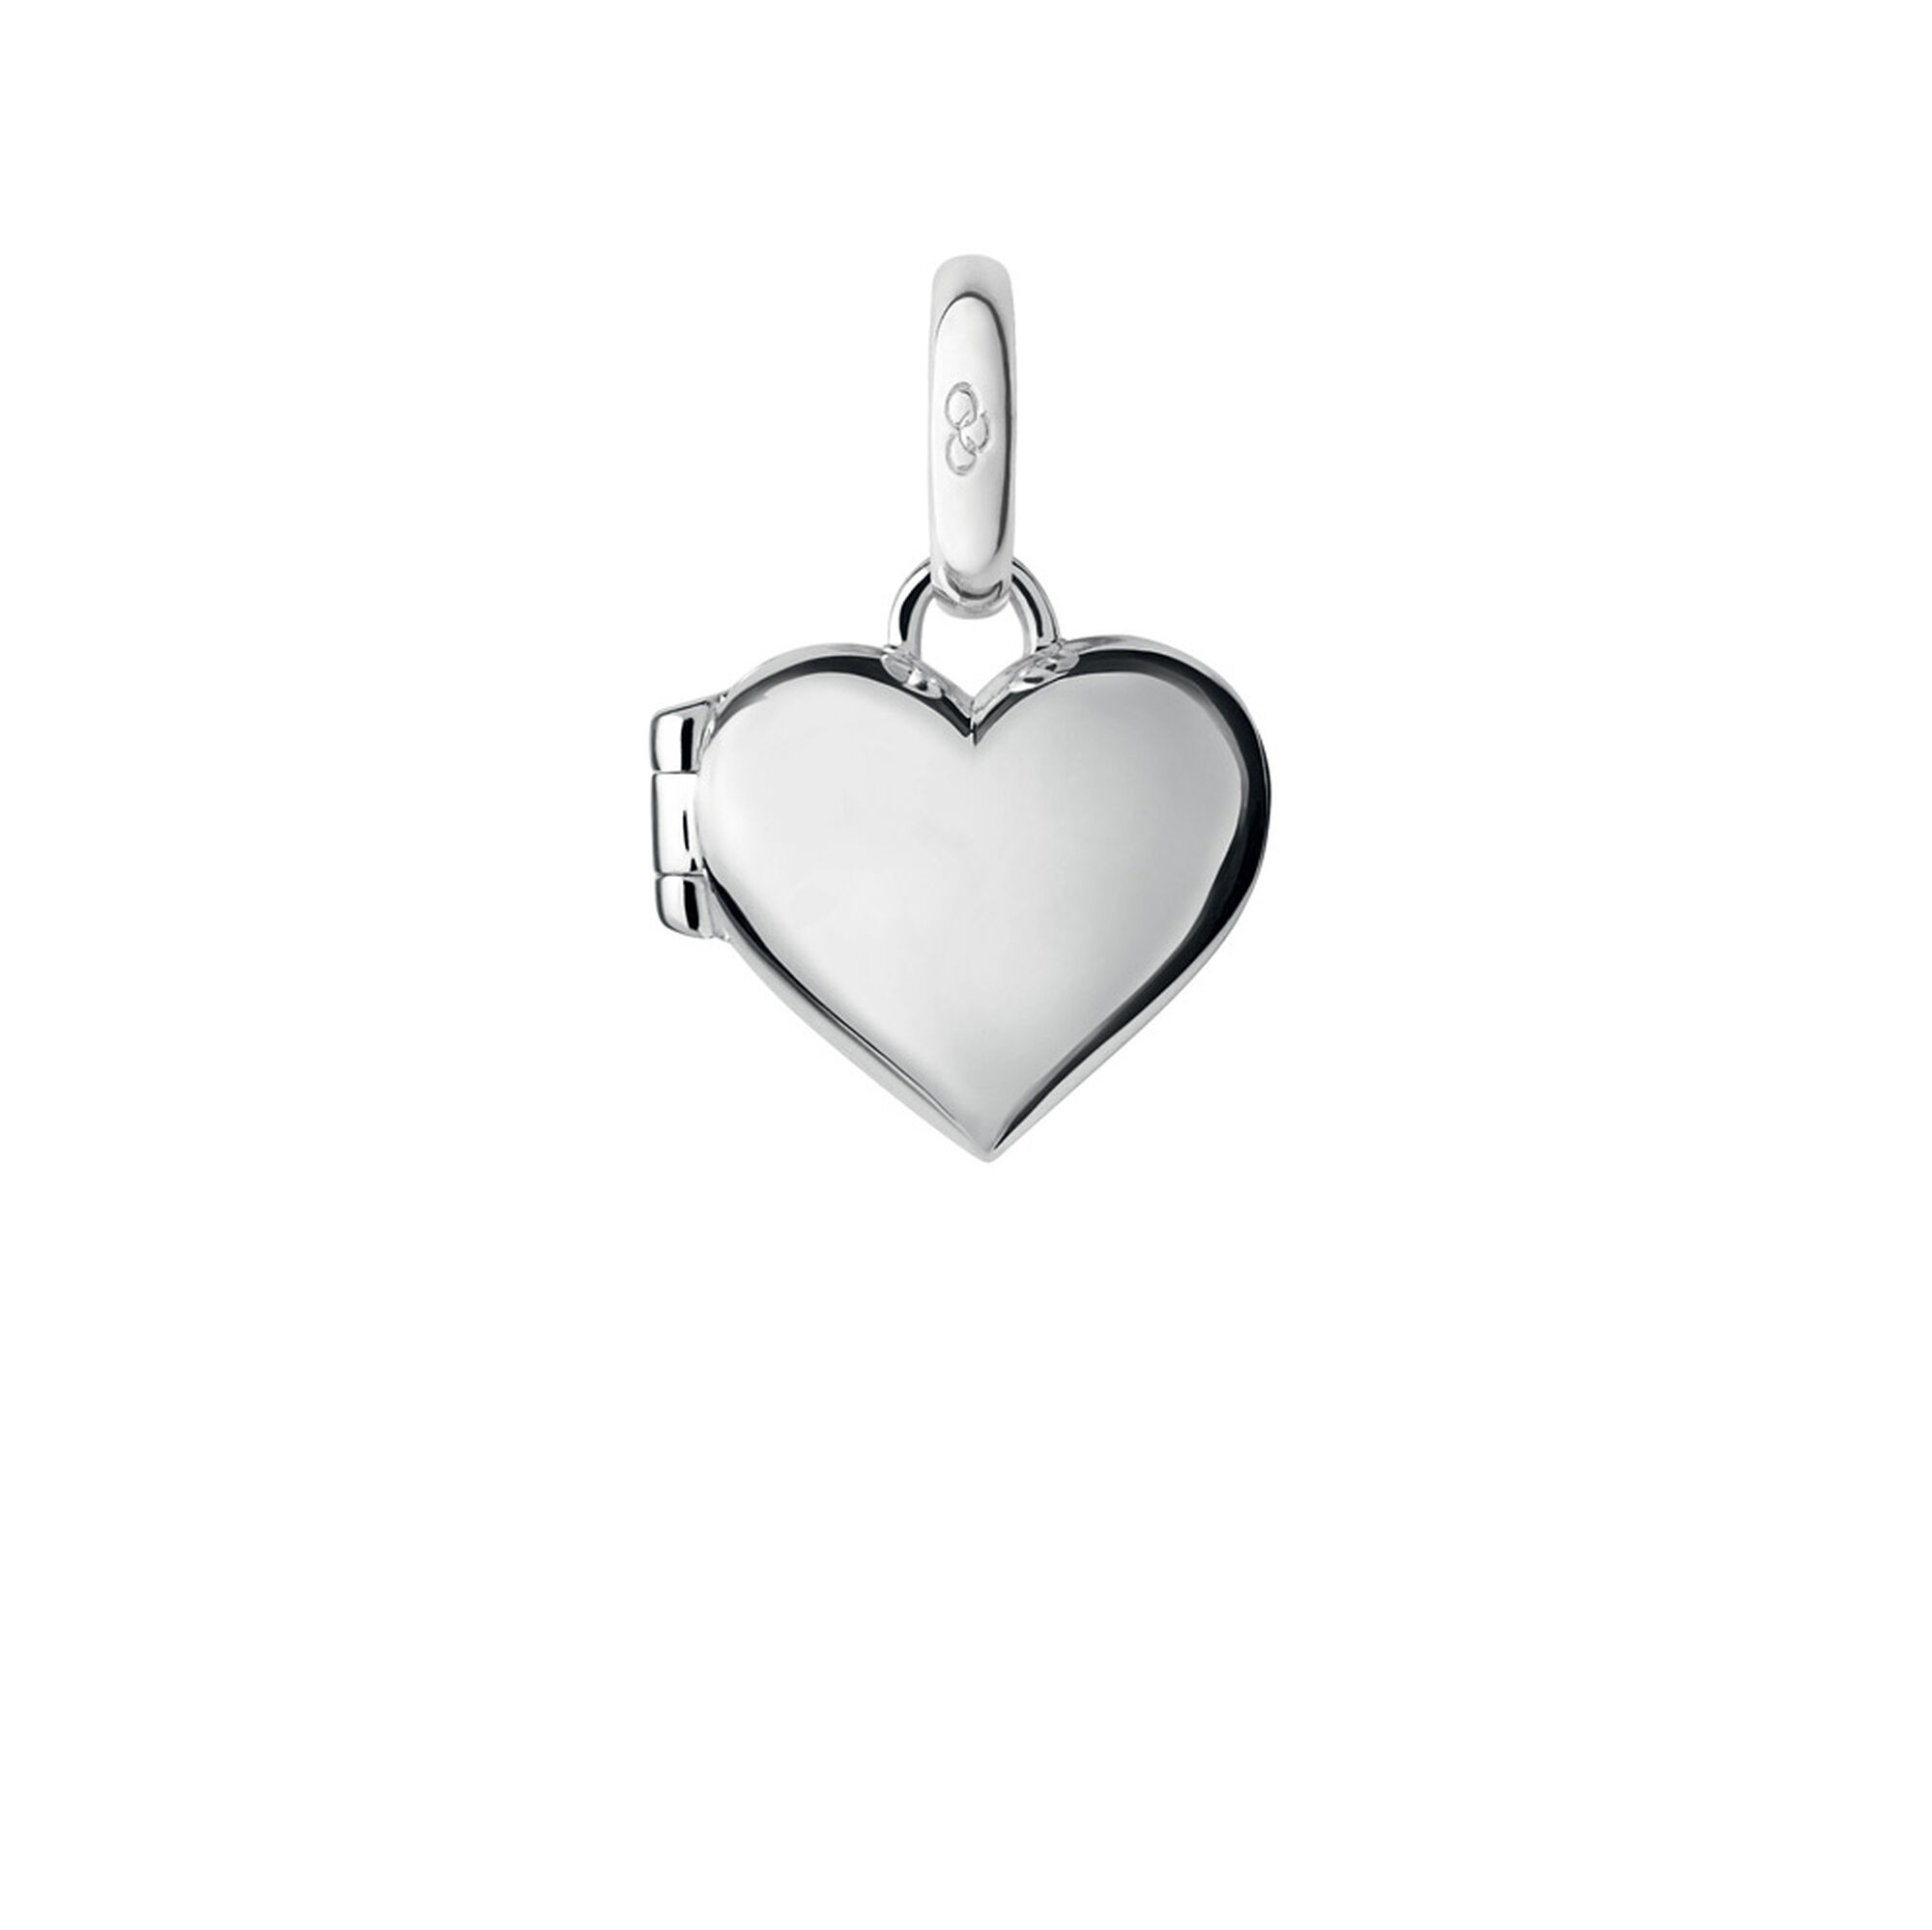 tiffany love i lockets pendant silver in images on upscale with sterling crop inscription false chain you subsampling scale hearts